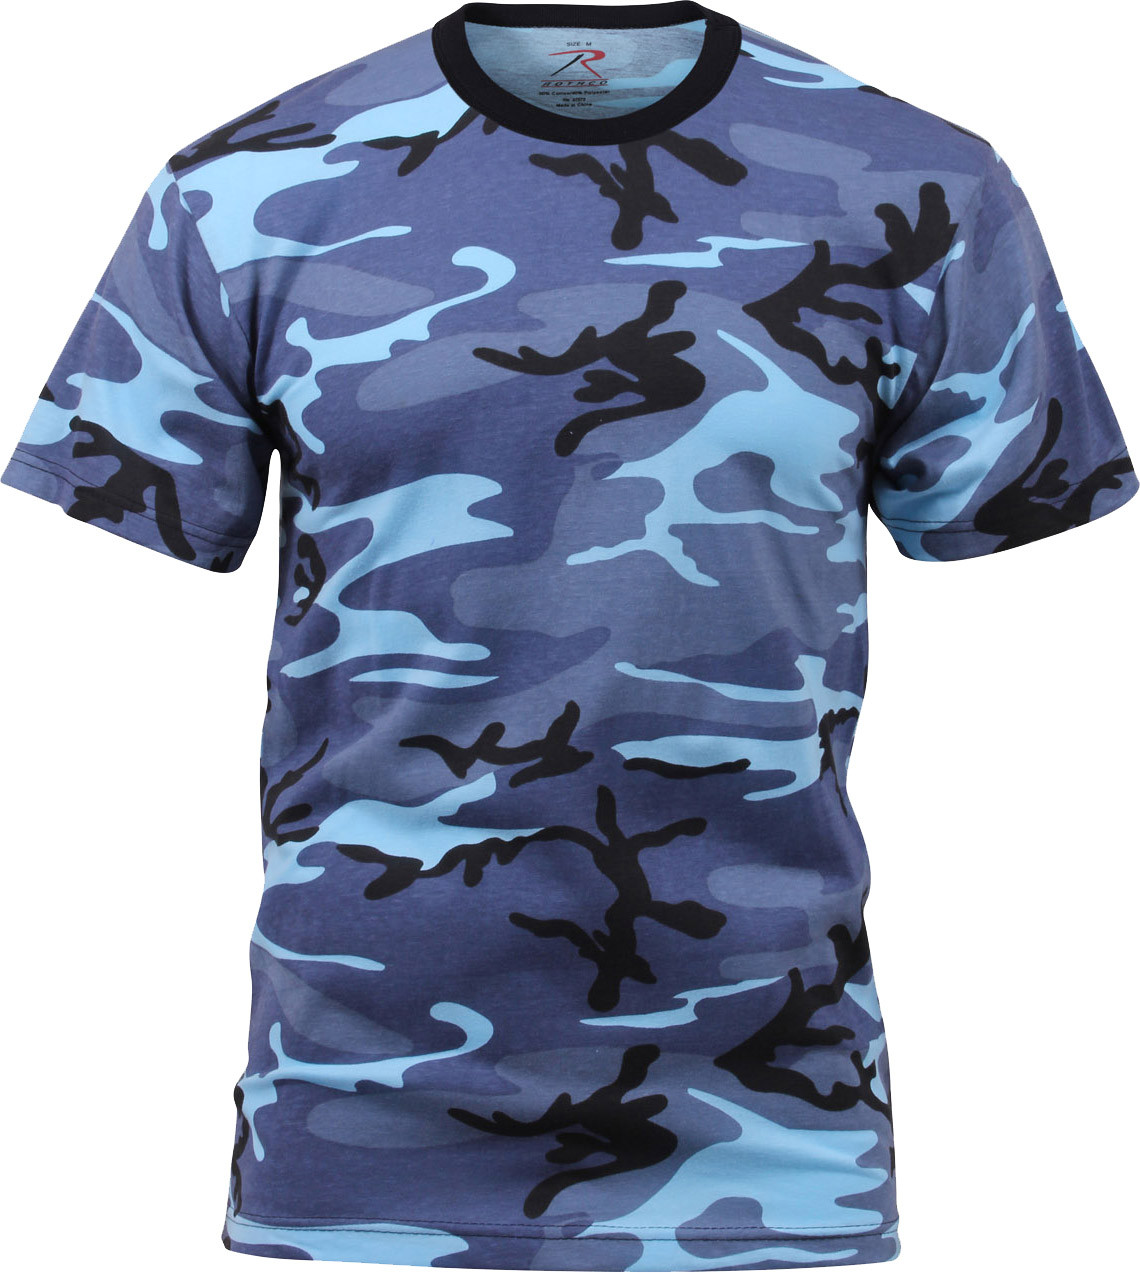 More Views. Sky Blue Camouflage Military Short Sleeve T-Shirt ... 03bf98f15b1